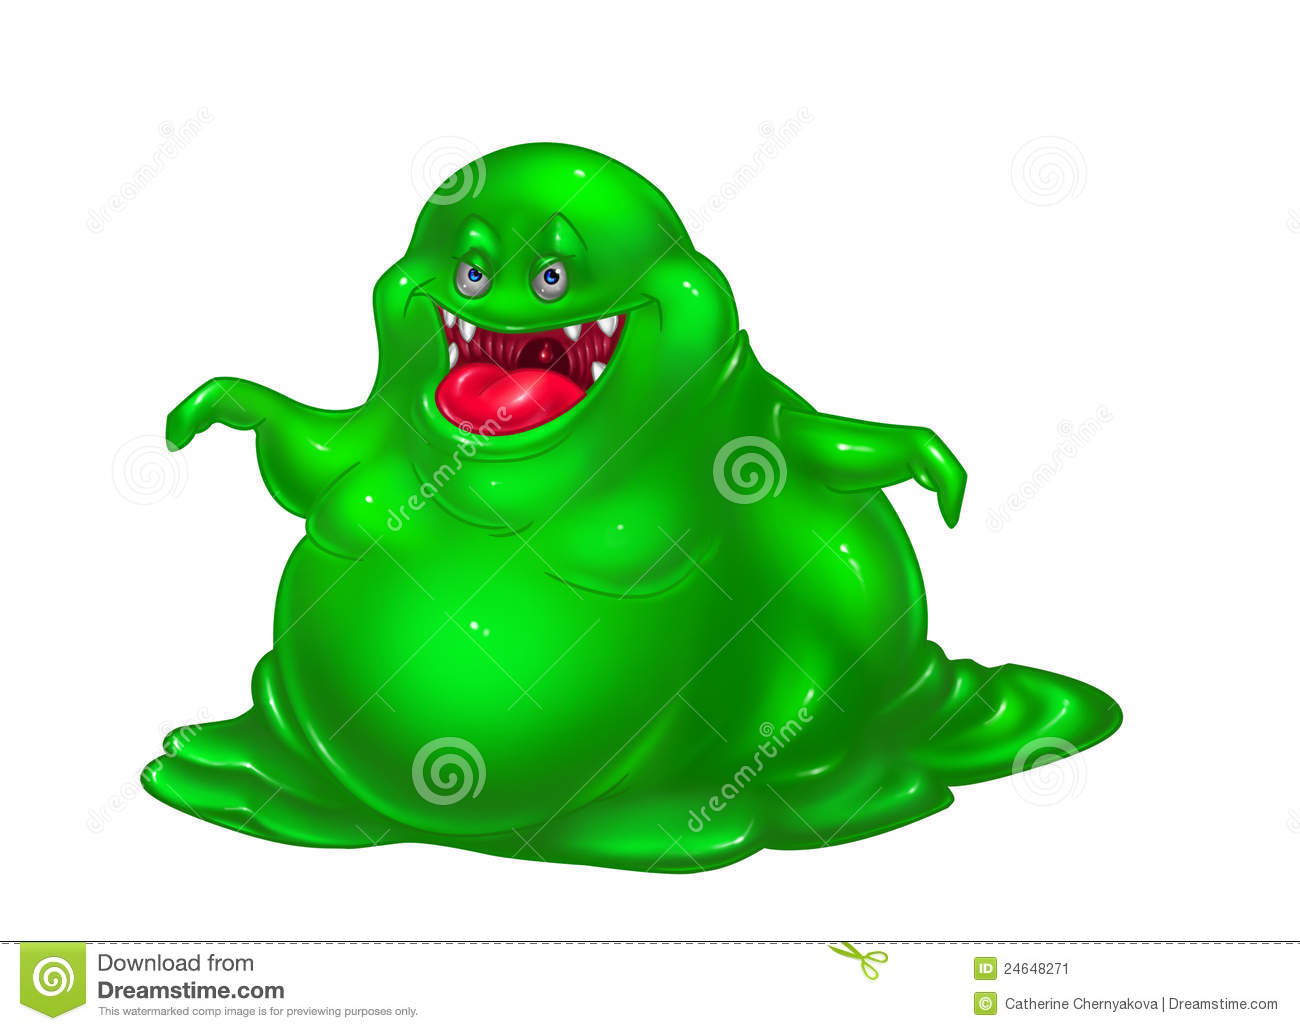 Green Monster Virus Stock Image - Image: 24648271